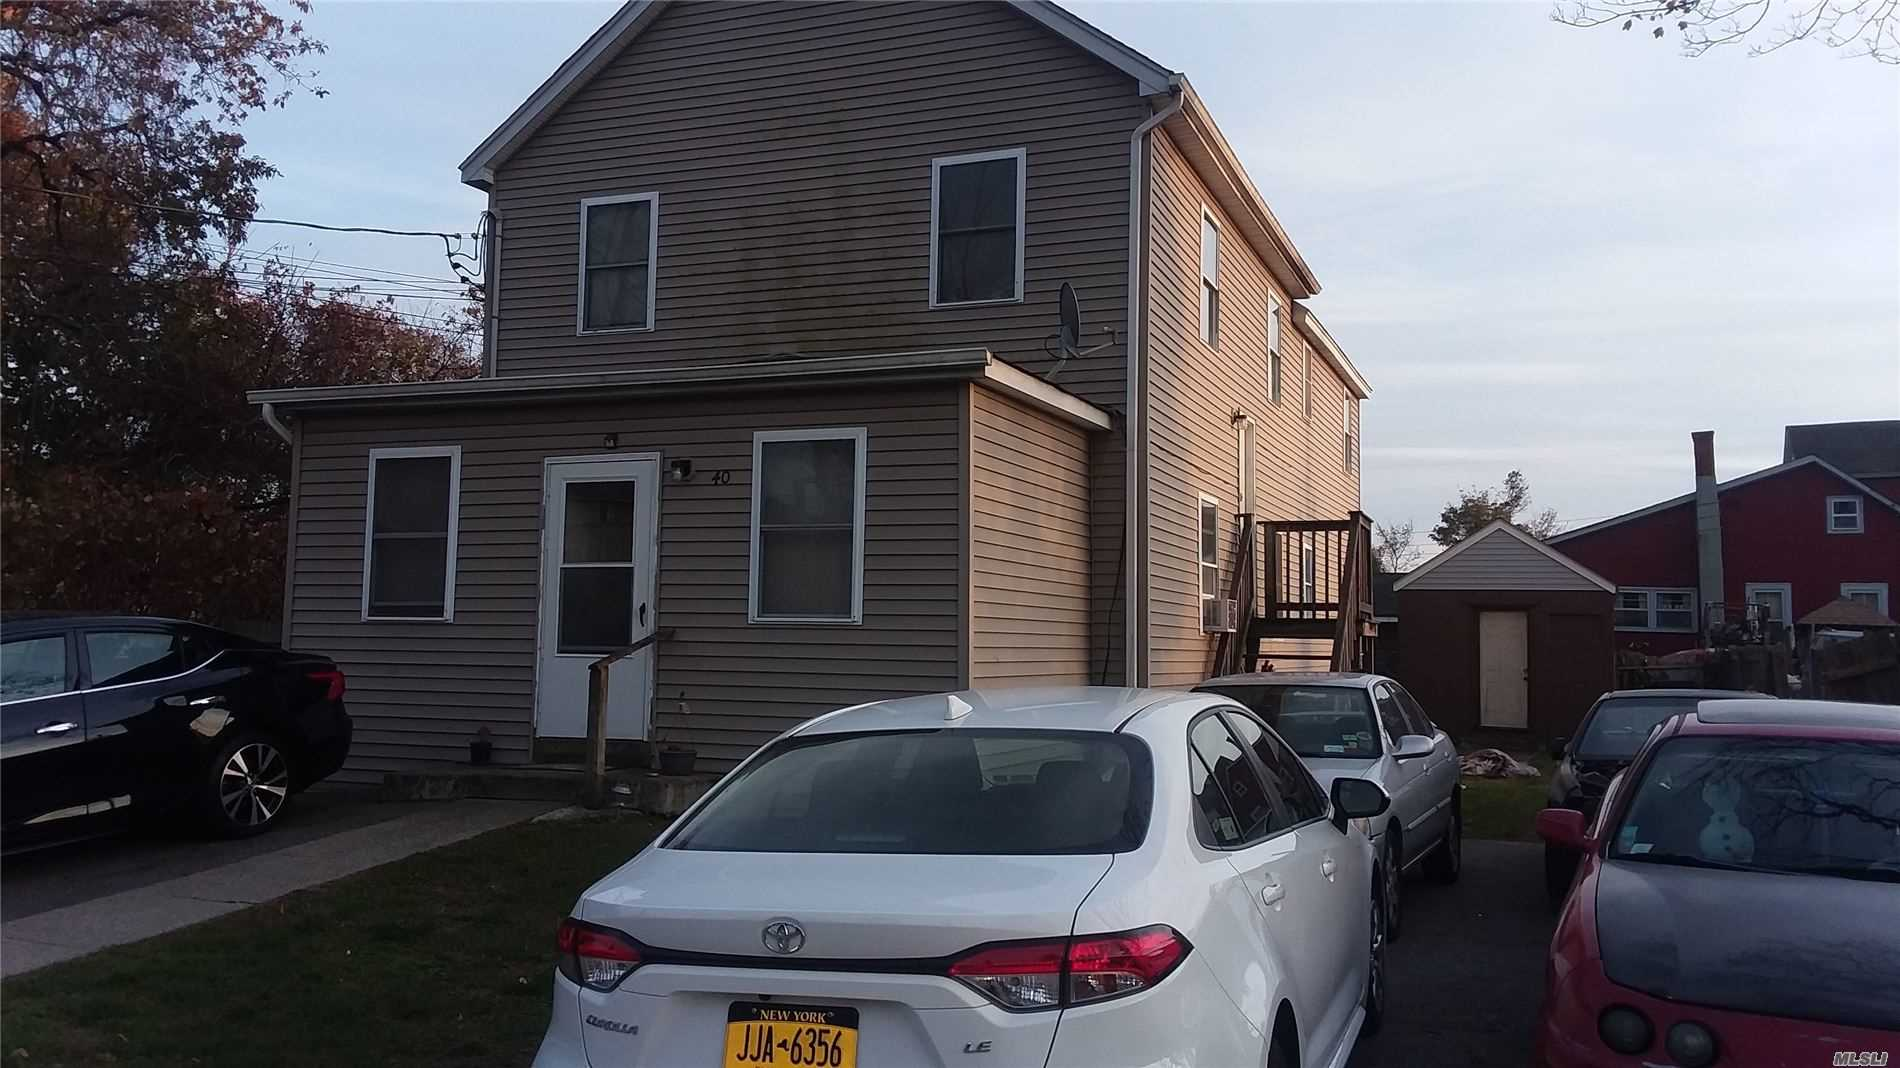 Property for sale at 40 Redington Street, Bay Shore NY 11706, Bay Shore,  New York 11706